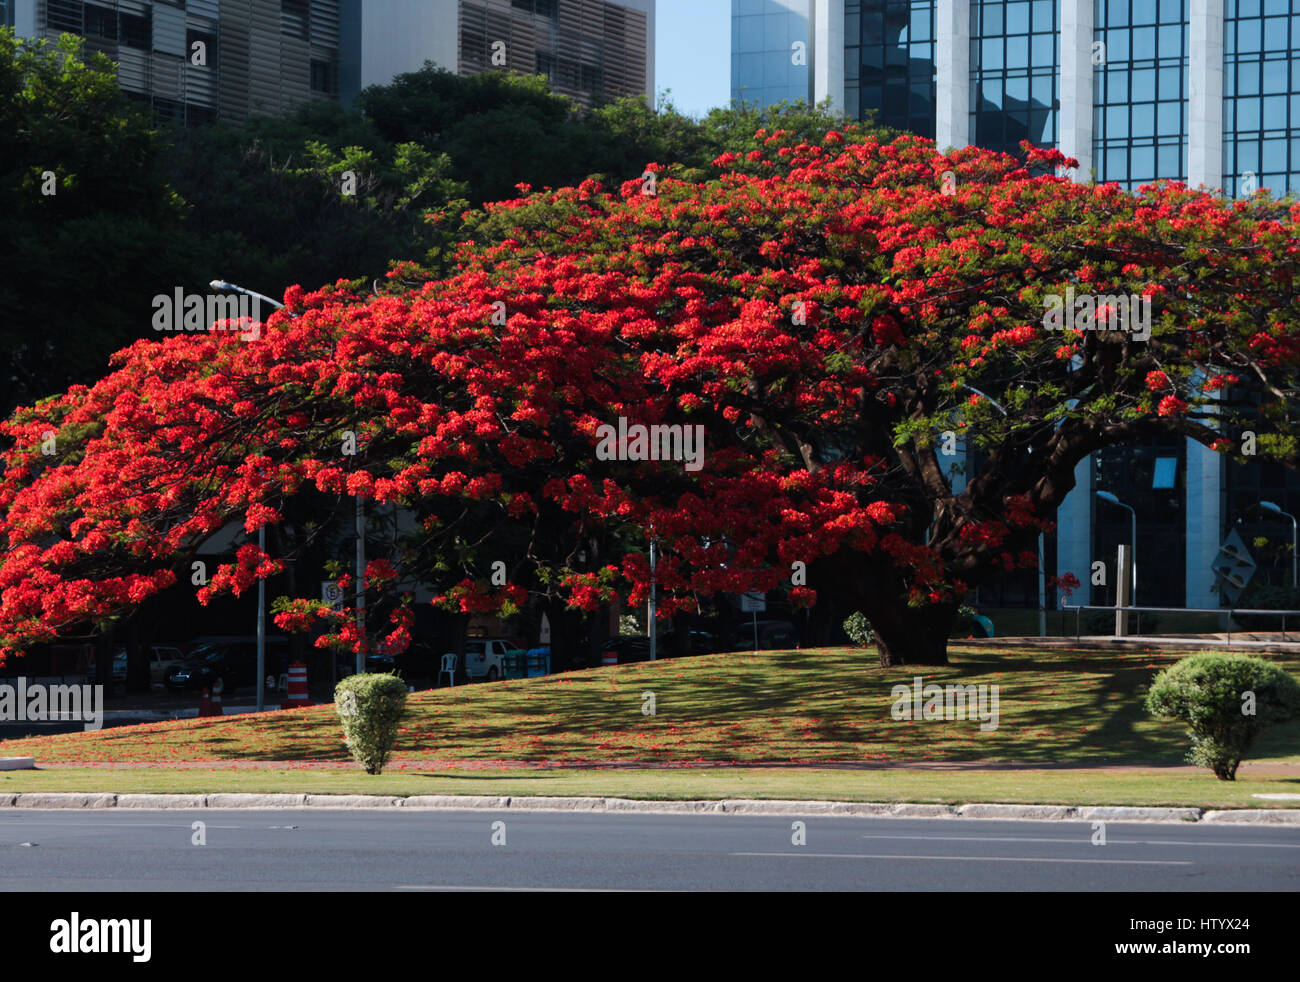 Brasilian Public Building: Flame tree at TJDF square, Federal district court of justice, Brasilia, DF, Brazil - Stock Image